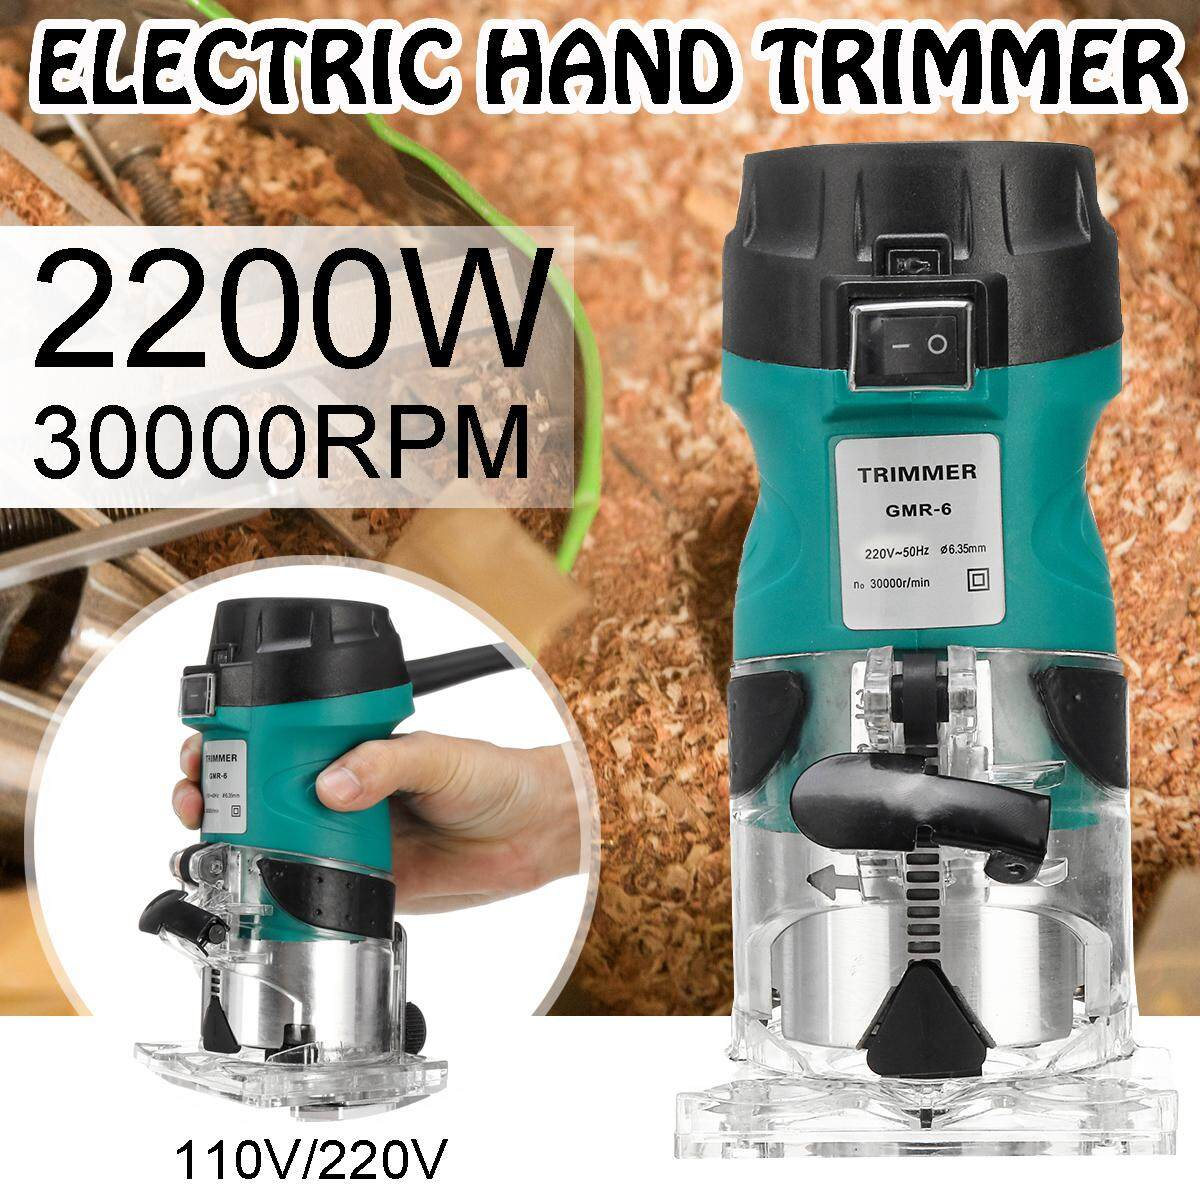 【Flash Deal + Free Shipping 2200w 1/4 Corded Hand Electric Trimmer Wood Laminator Router Joiners Tools 220V